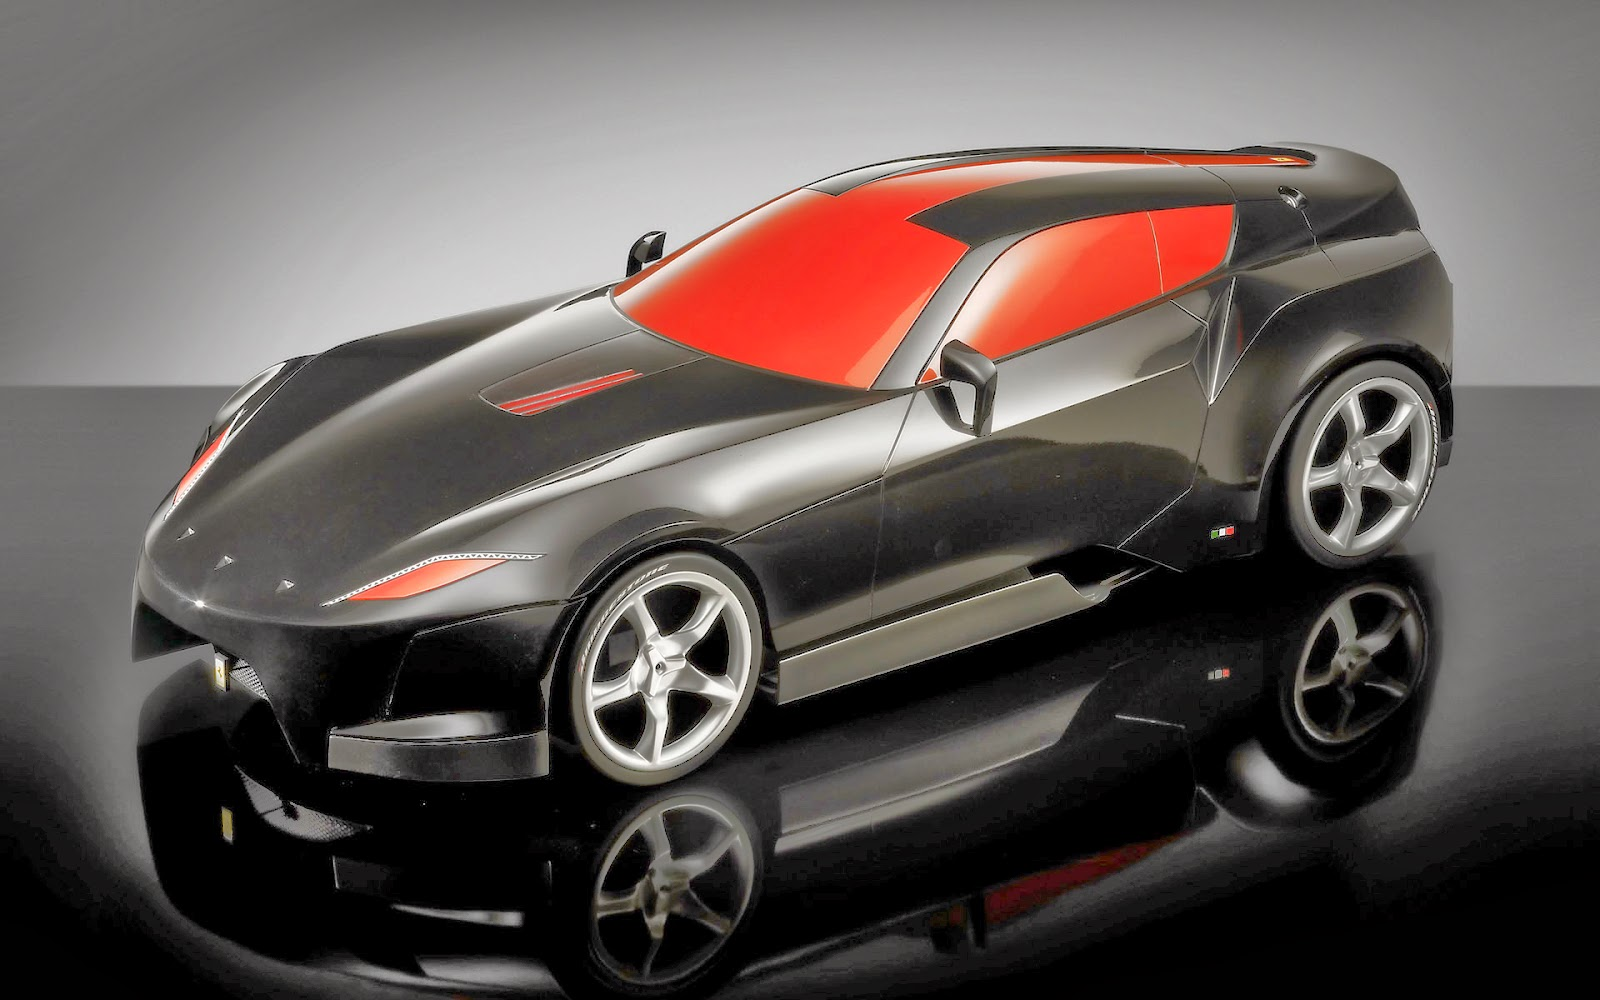 Lovable Images: Ferrari Car HD Pictures Free Download ...